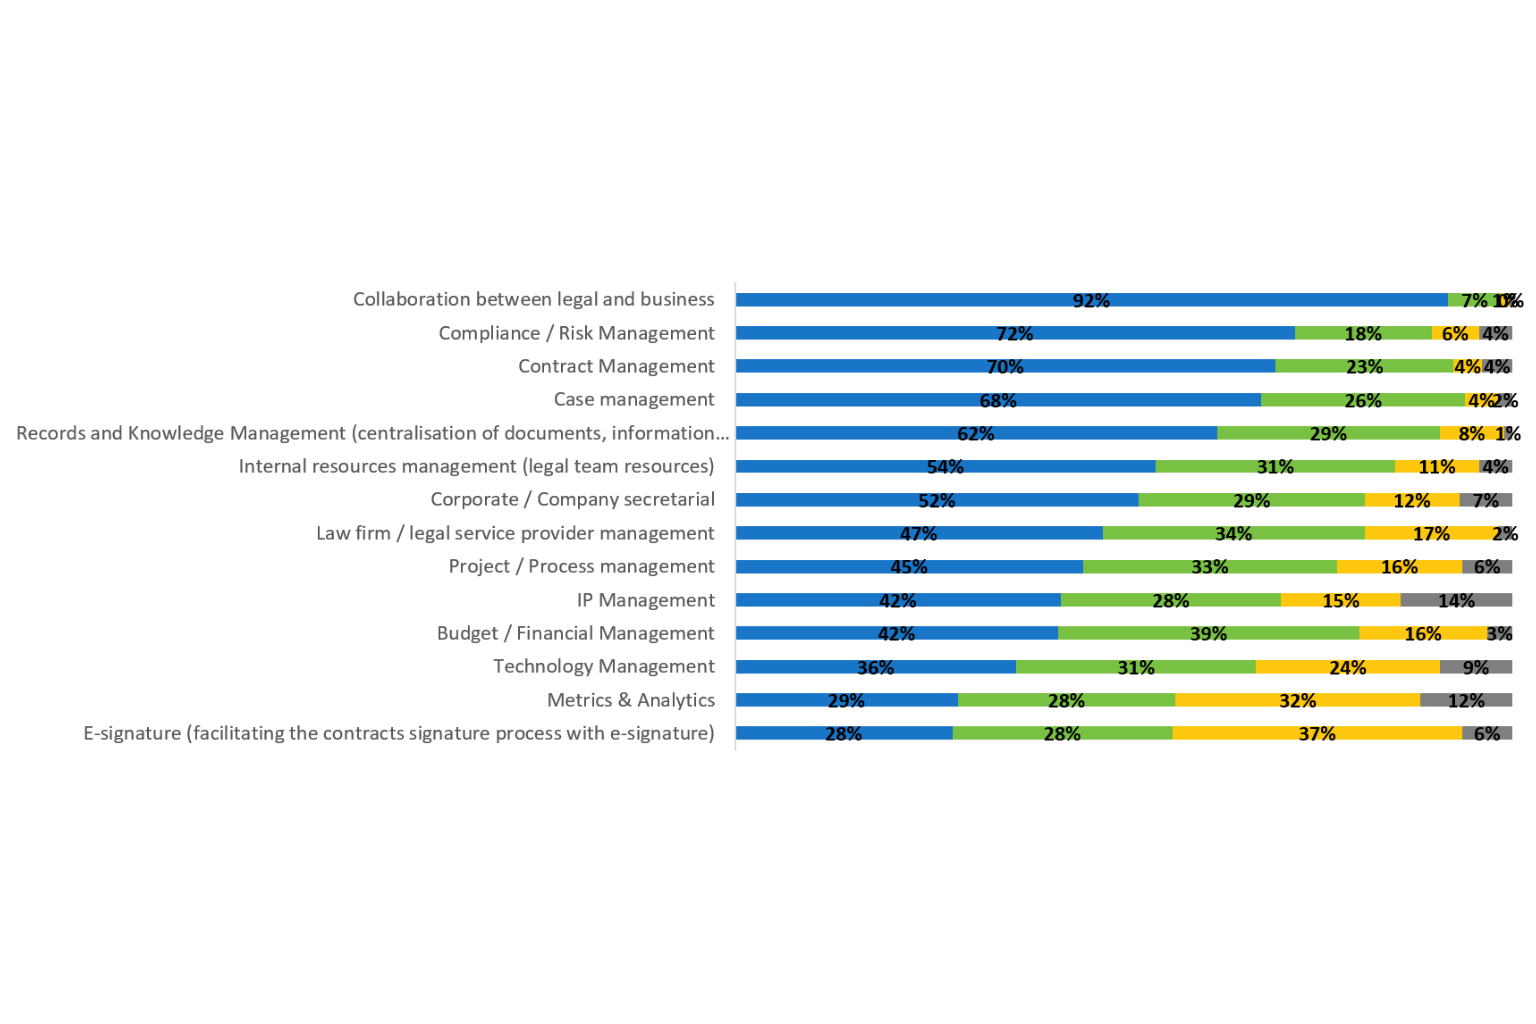 Improvements most urgently needed in legal departments